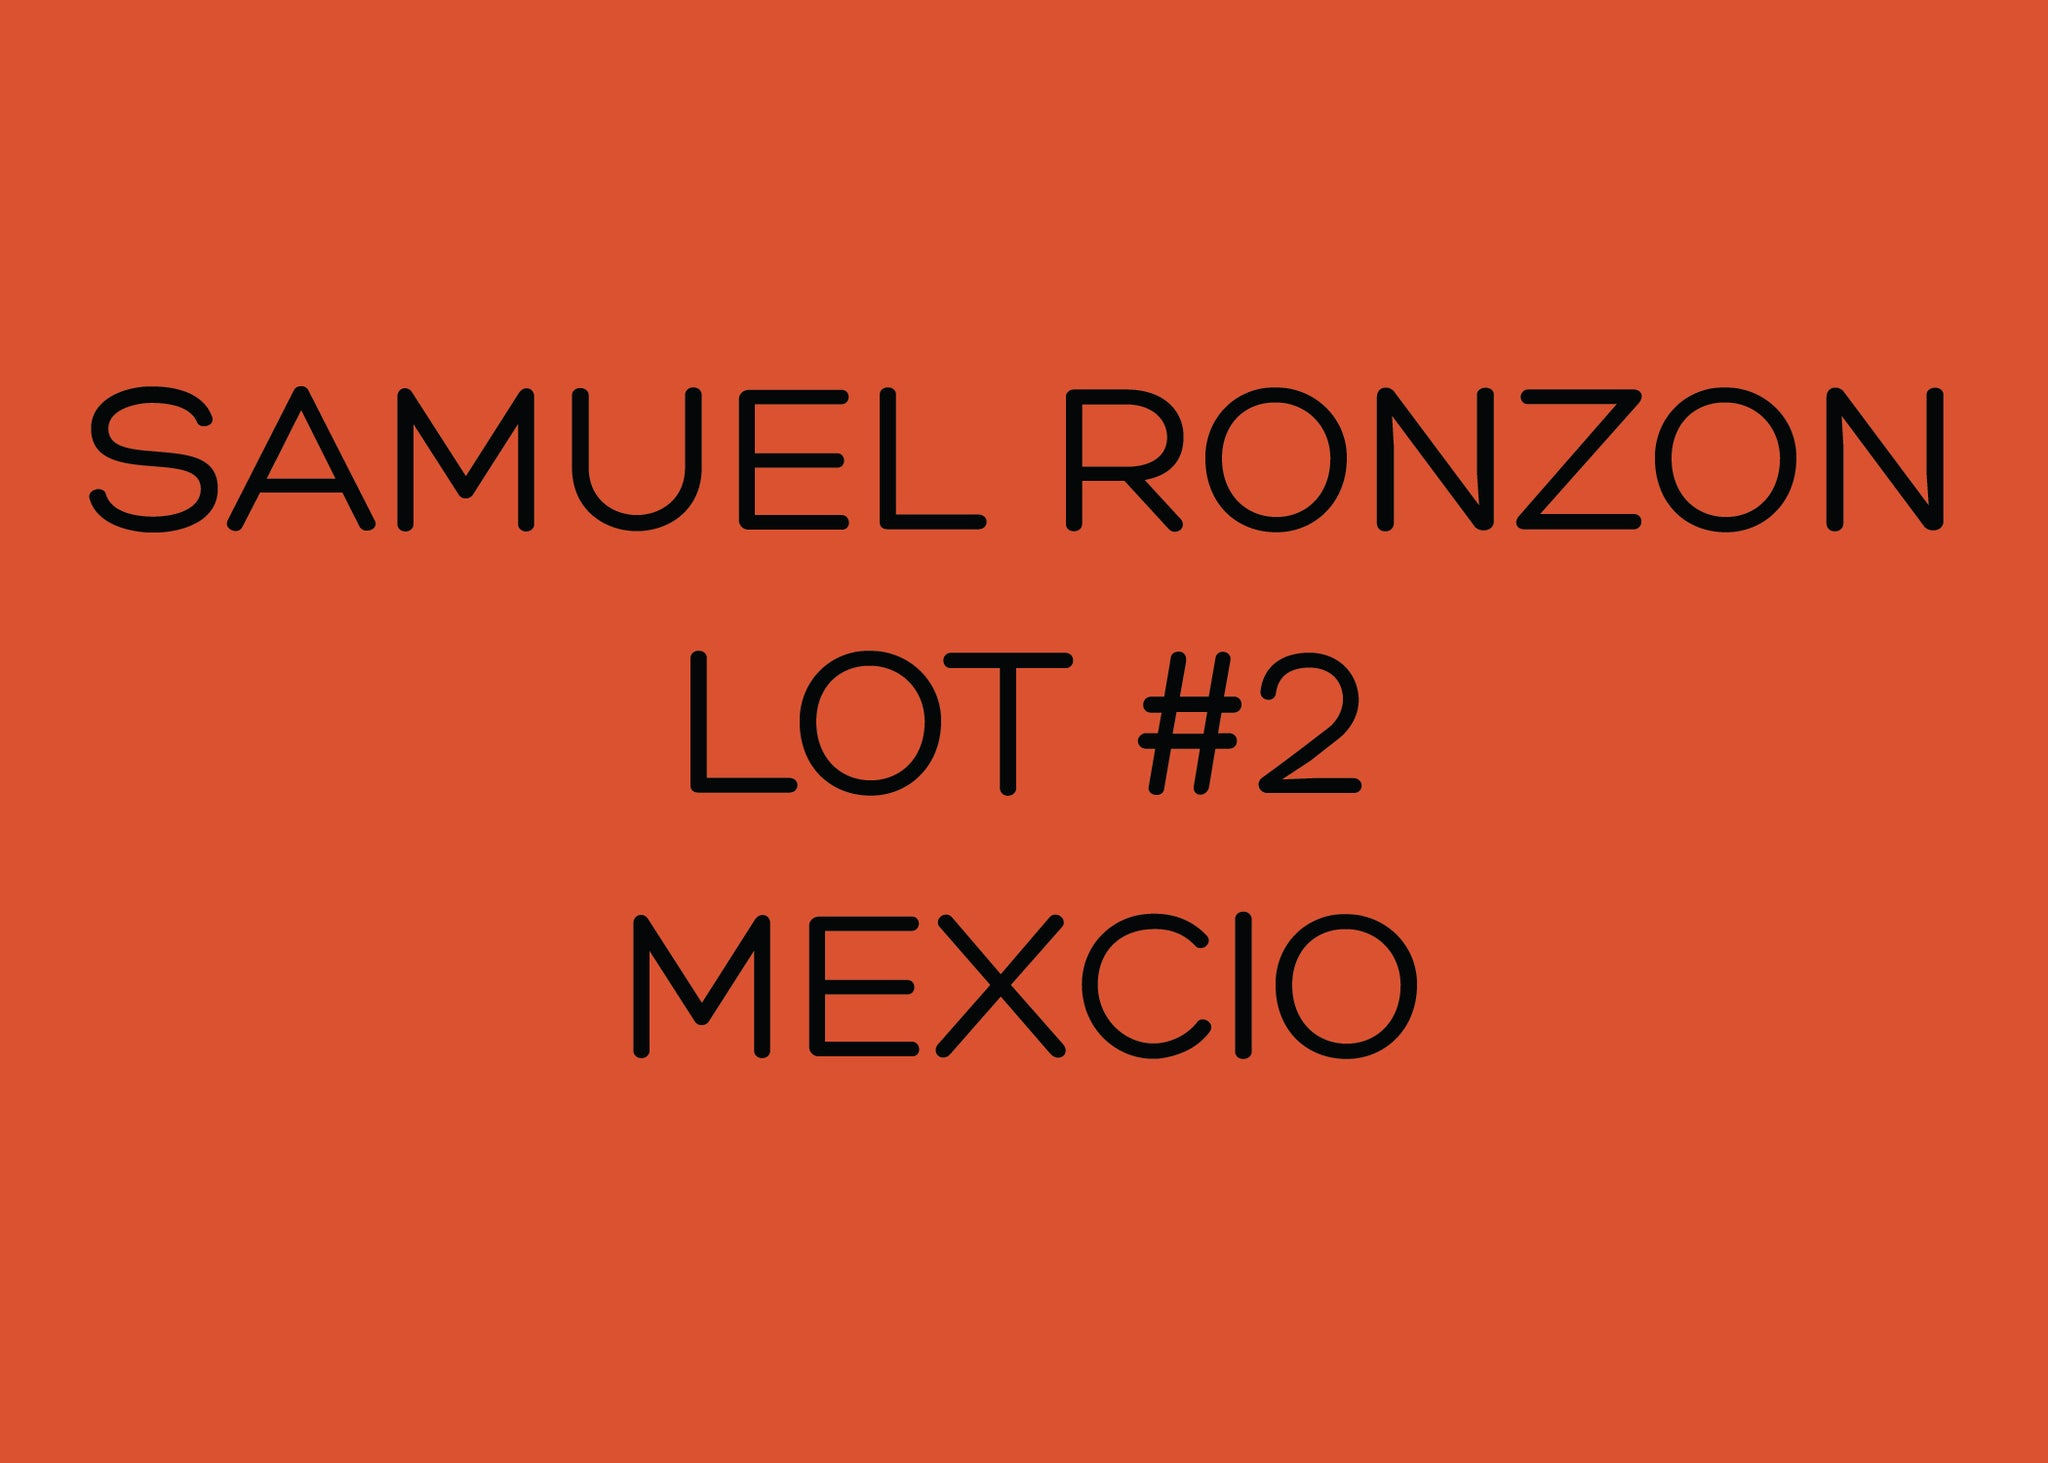 SAMUEL RONZON LOT #2 - ANAEROBIC NATURAL - MEXICO